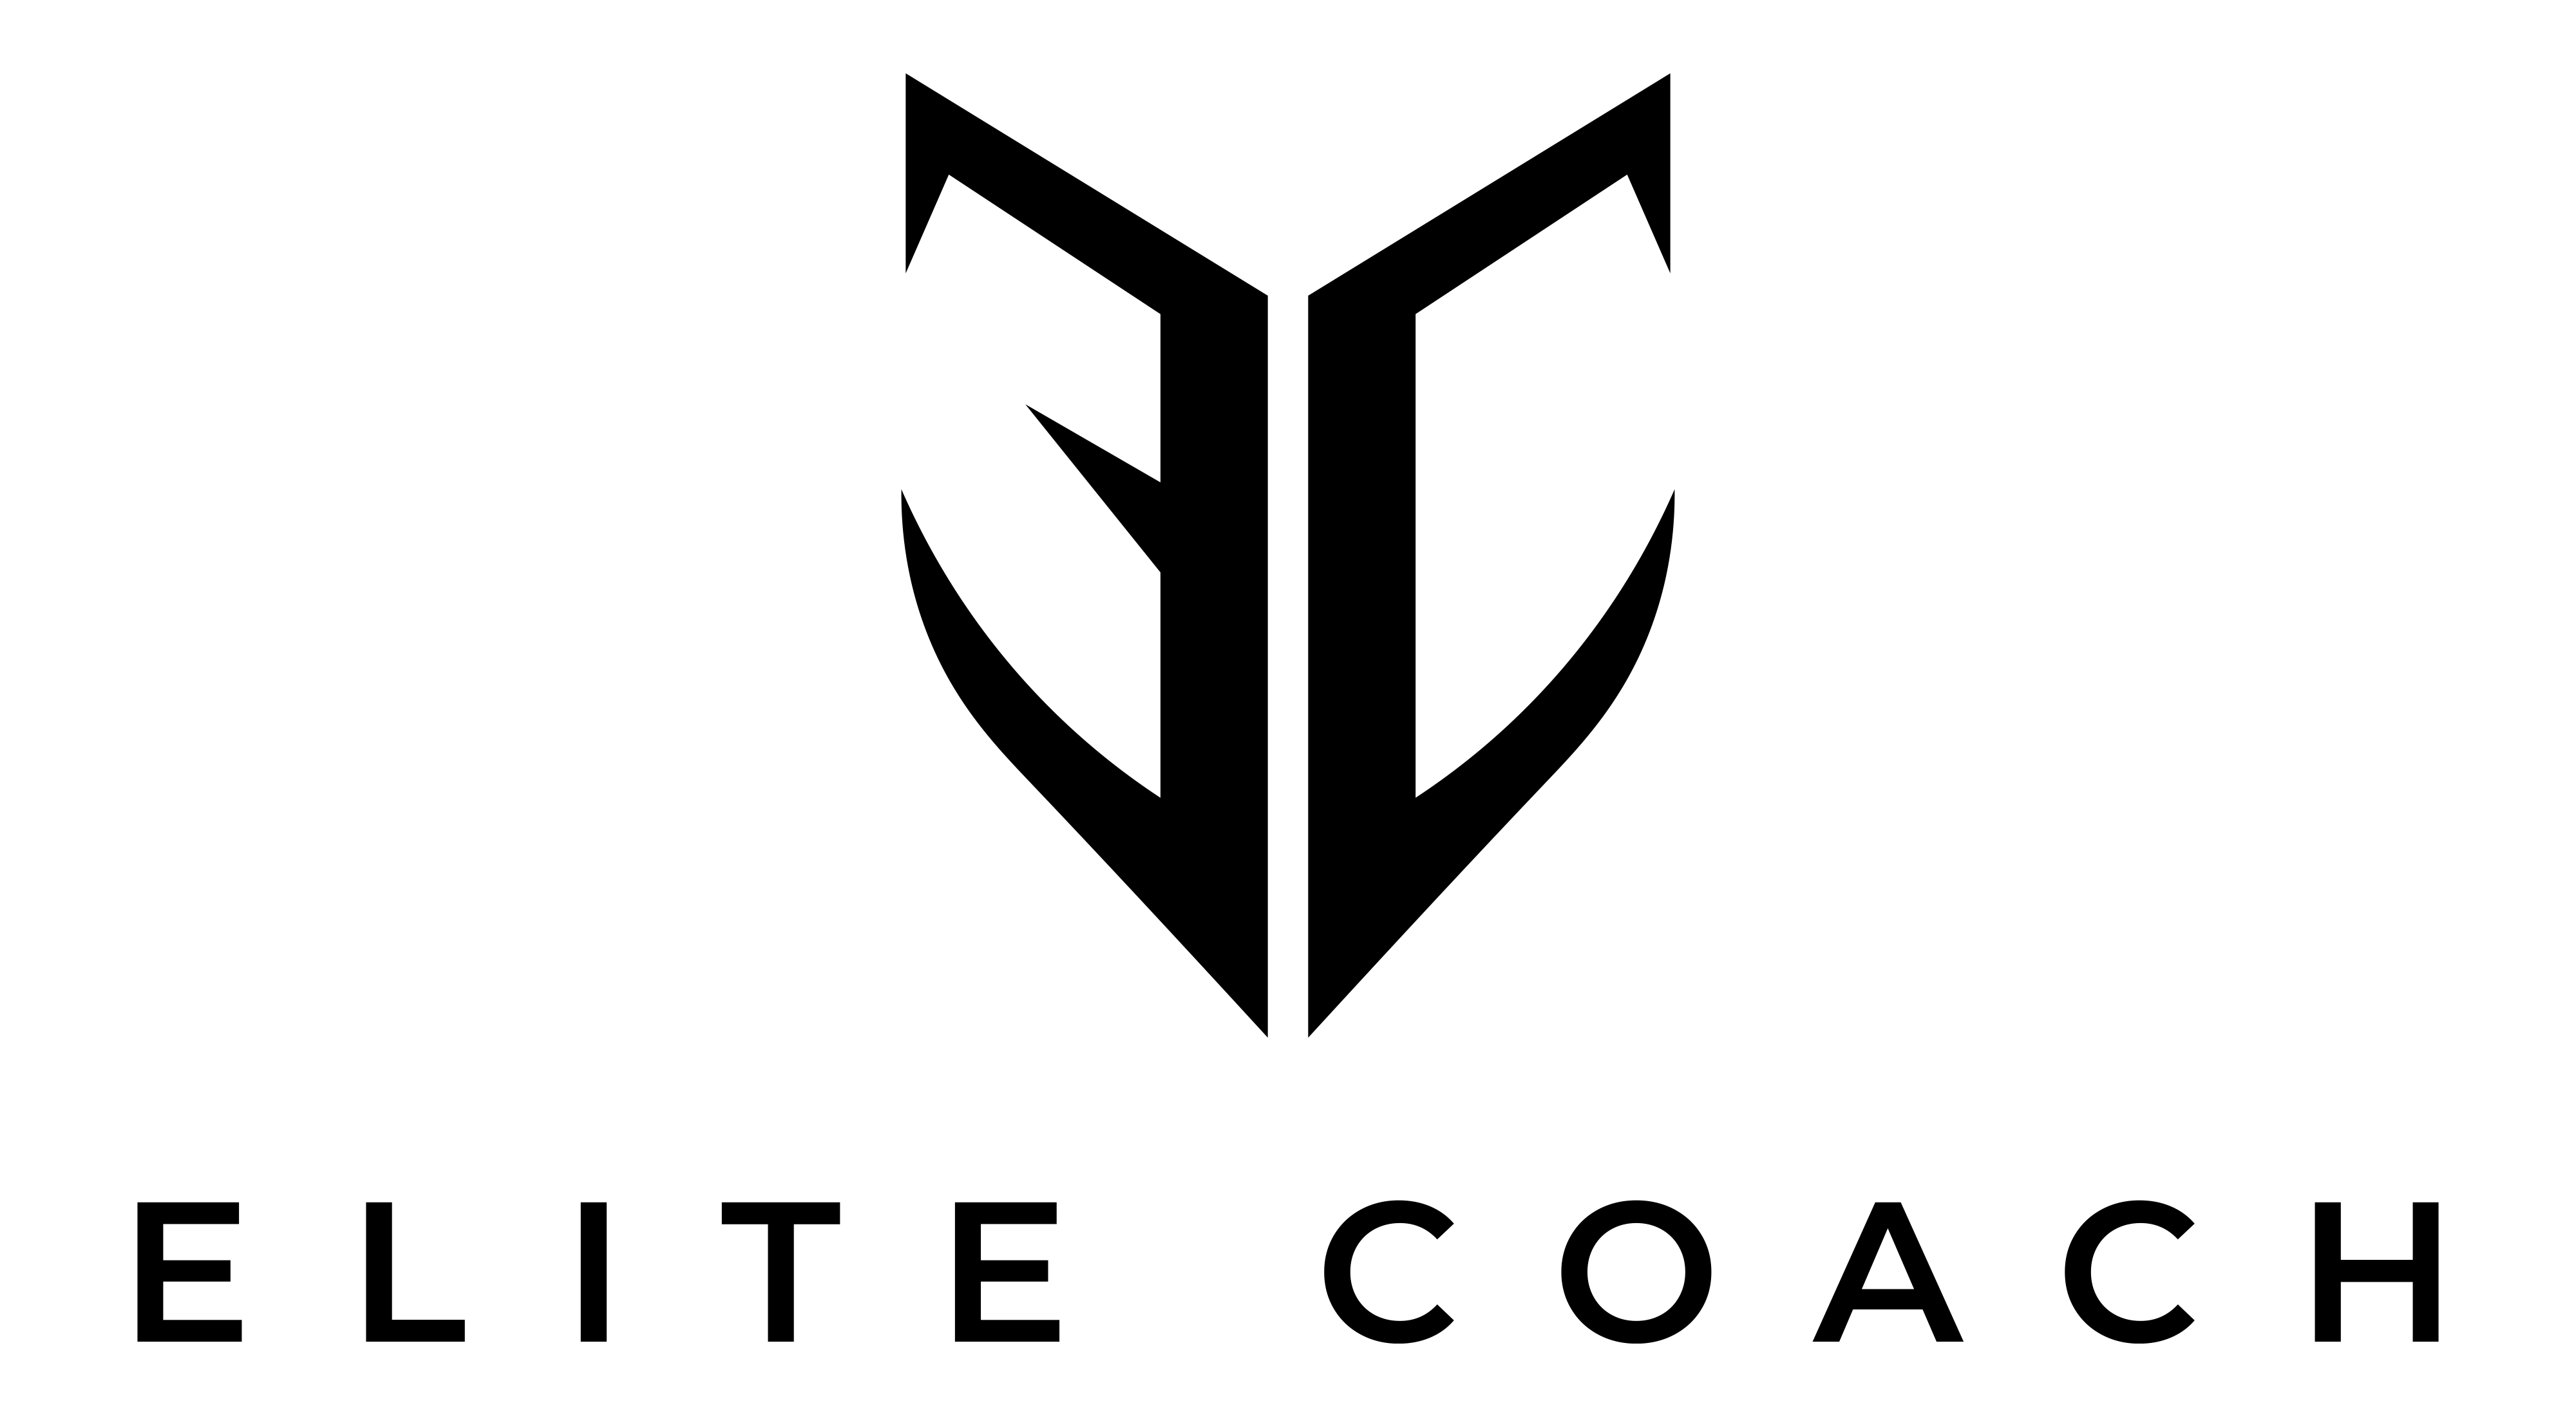 Elite Coach Black Version With White Background